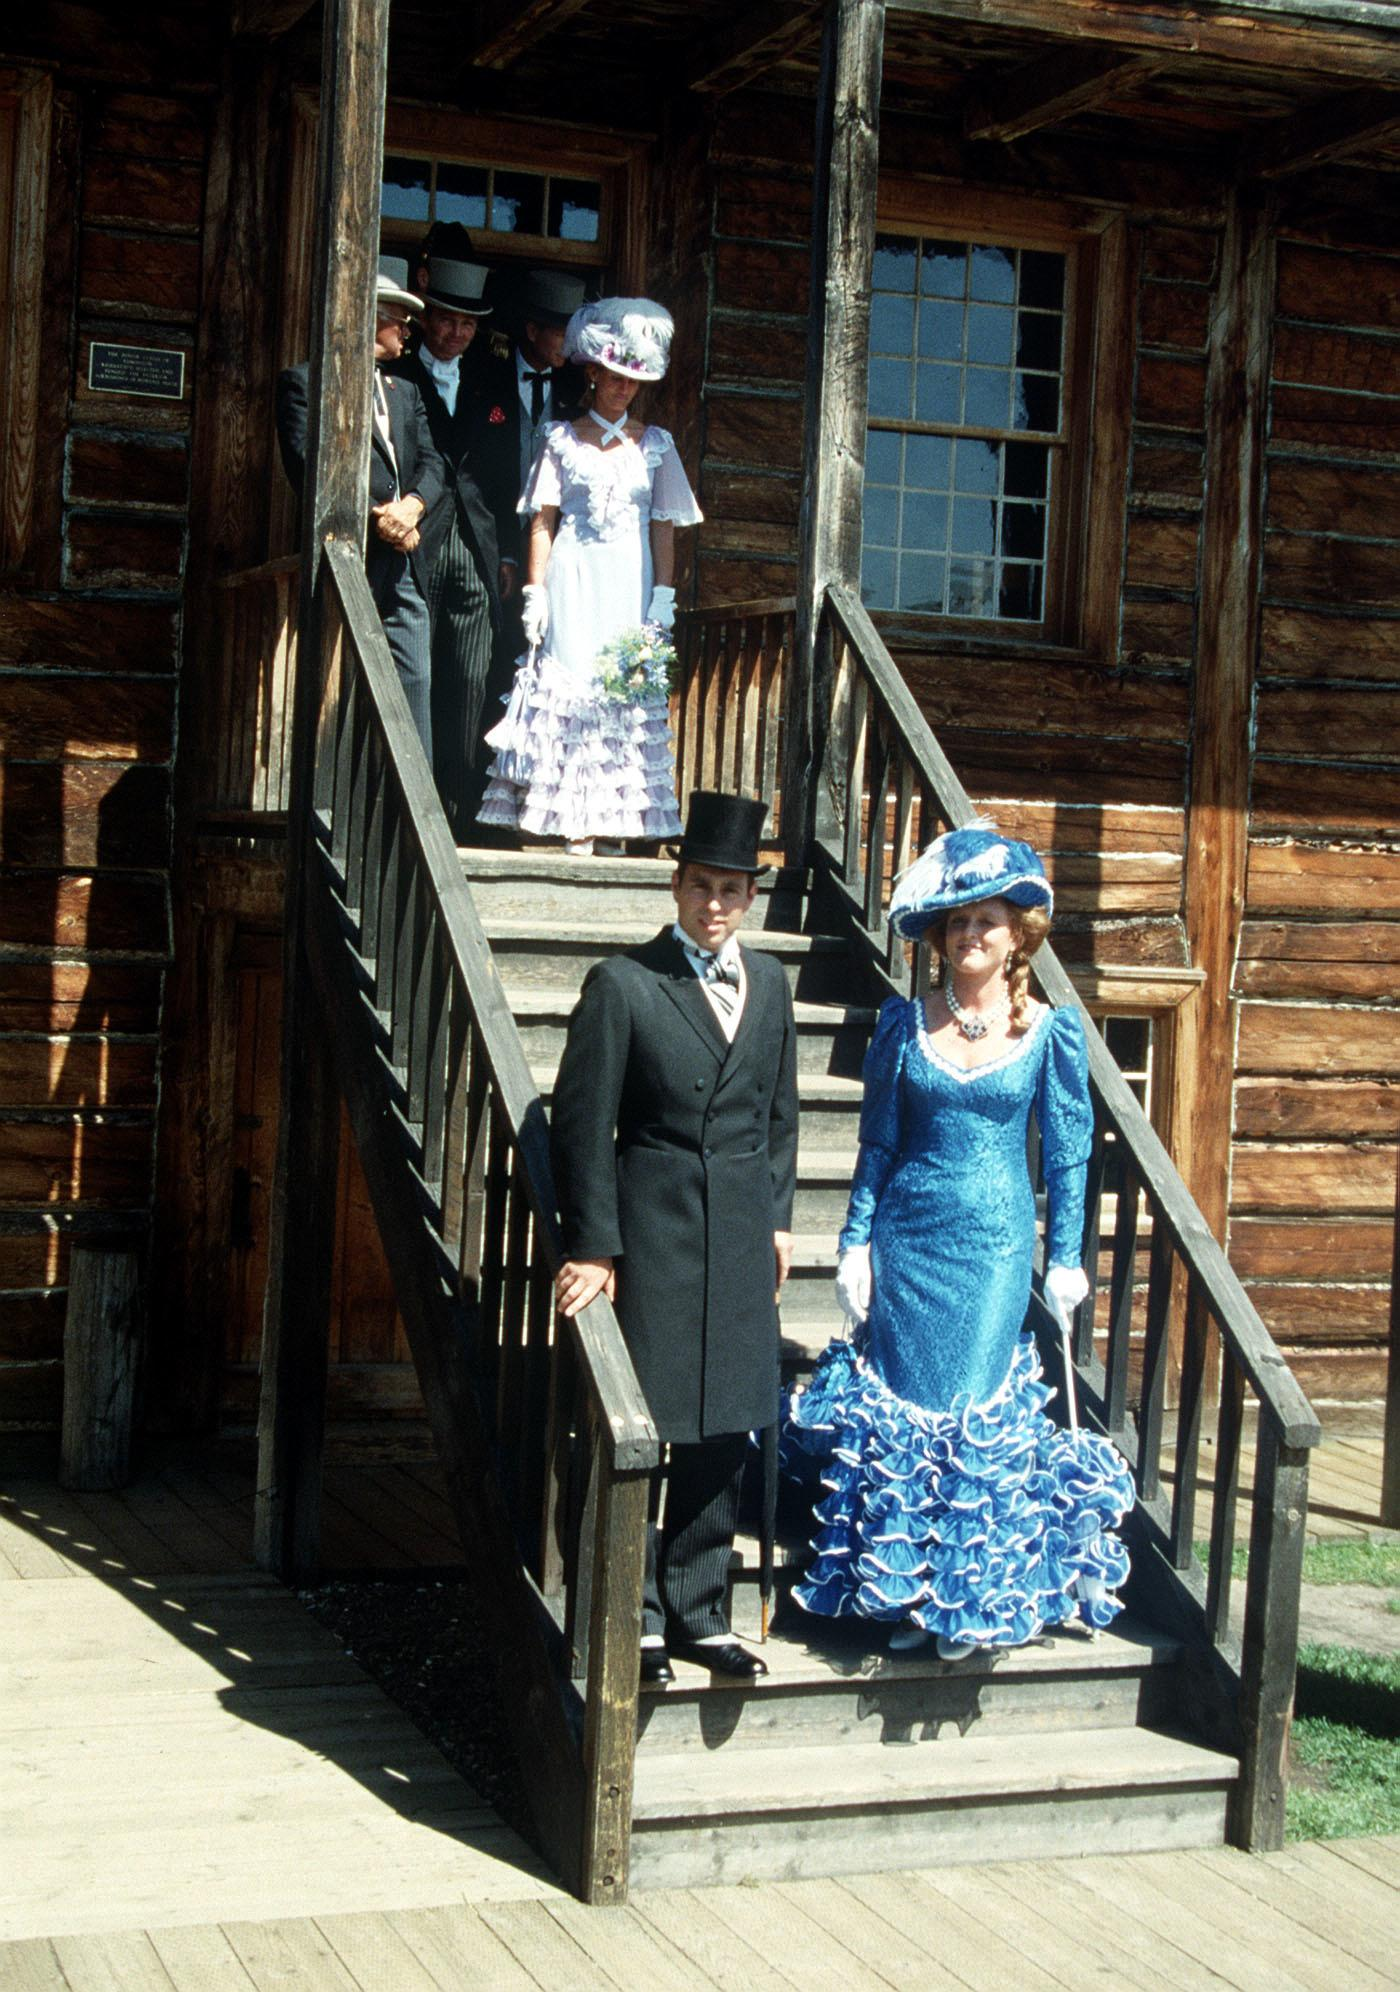 The Duke and Duchess of York dressed in period costumes at the replica Klondike village in Port Edmonton, Alberta during their first official tour together in Canada before setting off on a two-week canoeing holiday in the Wild North West Territories